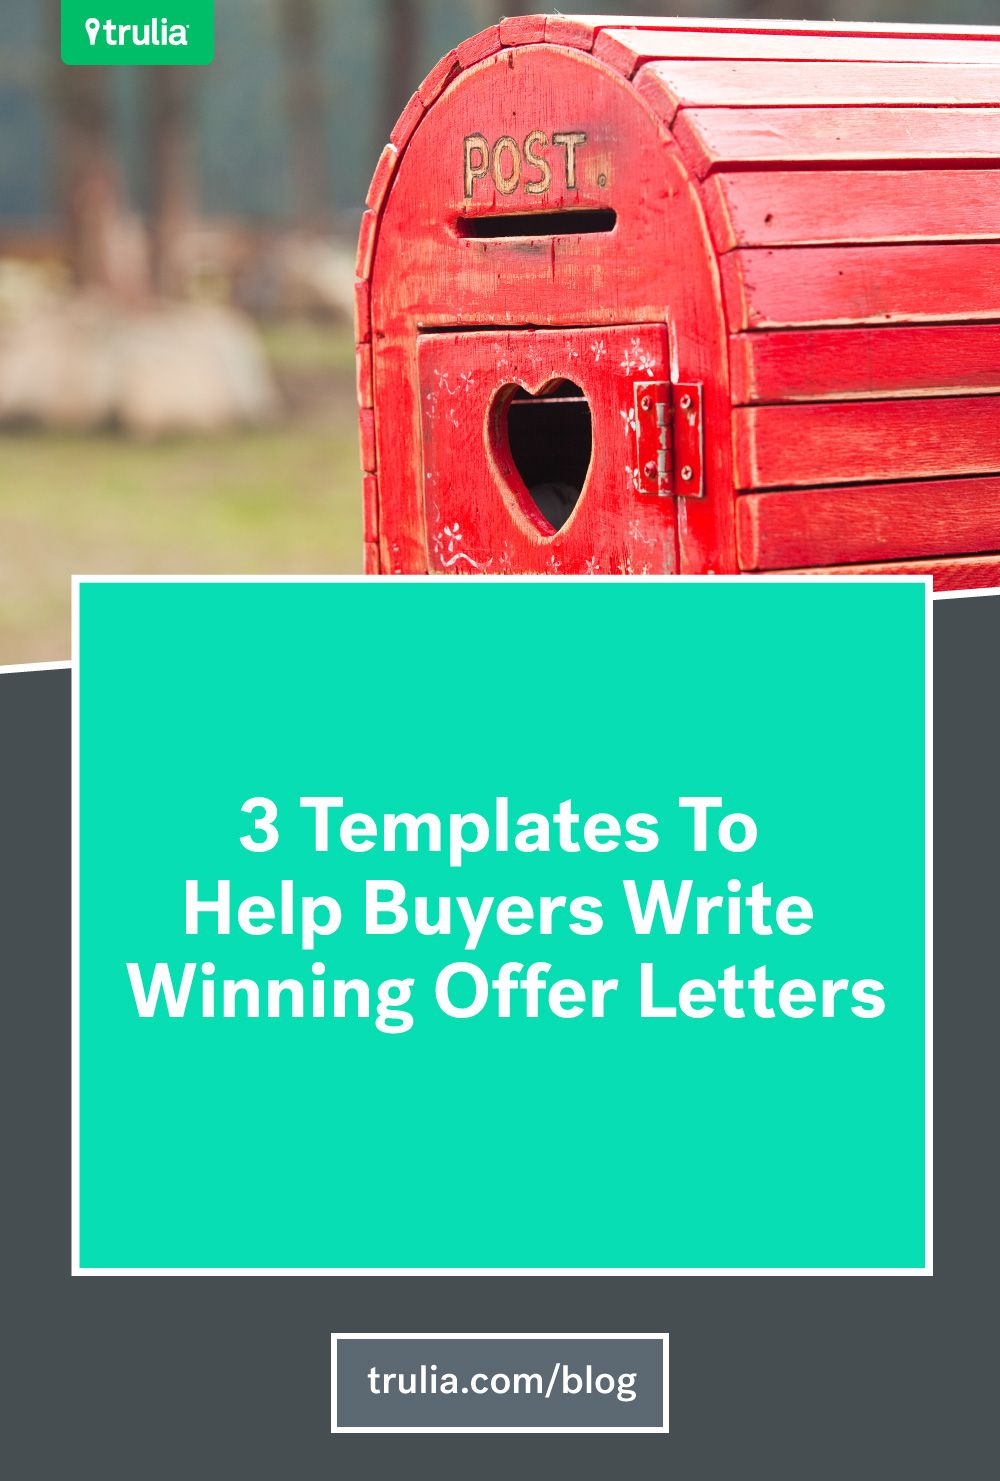 How To Write An Offer Letter House Hunting Tps Pinterest Real